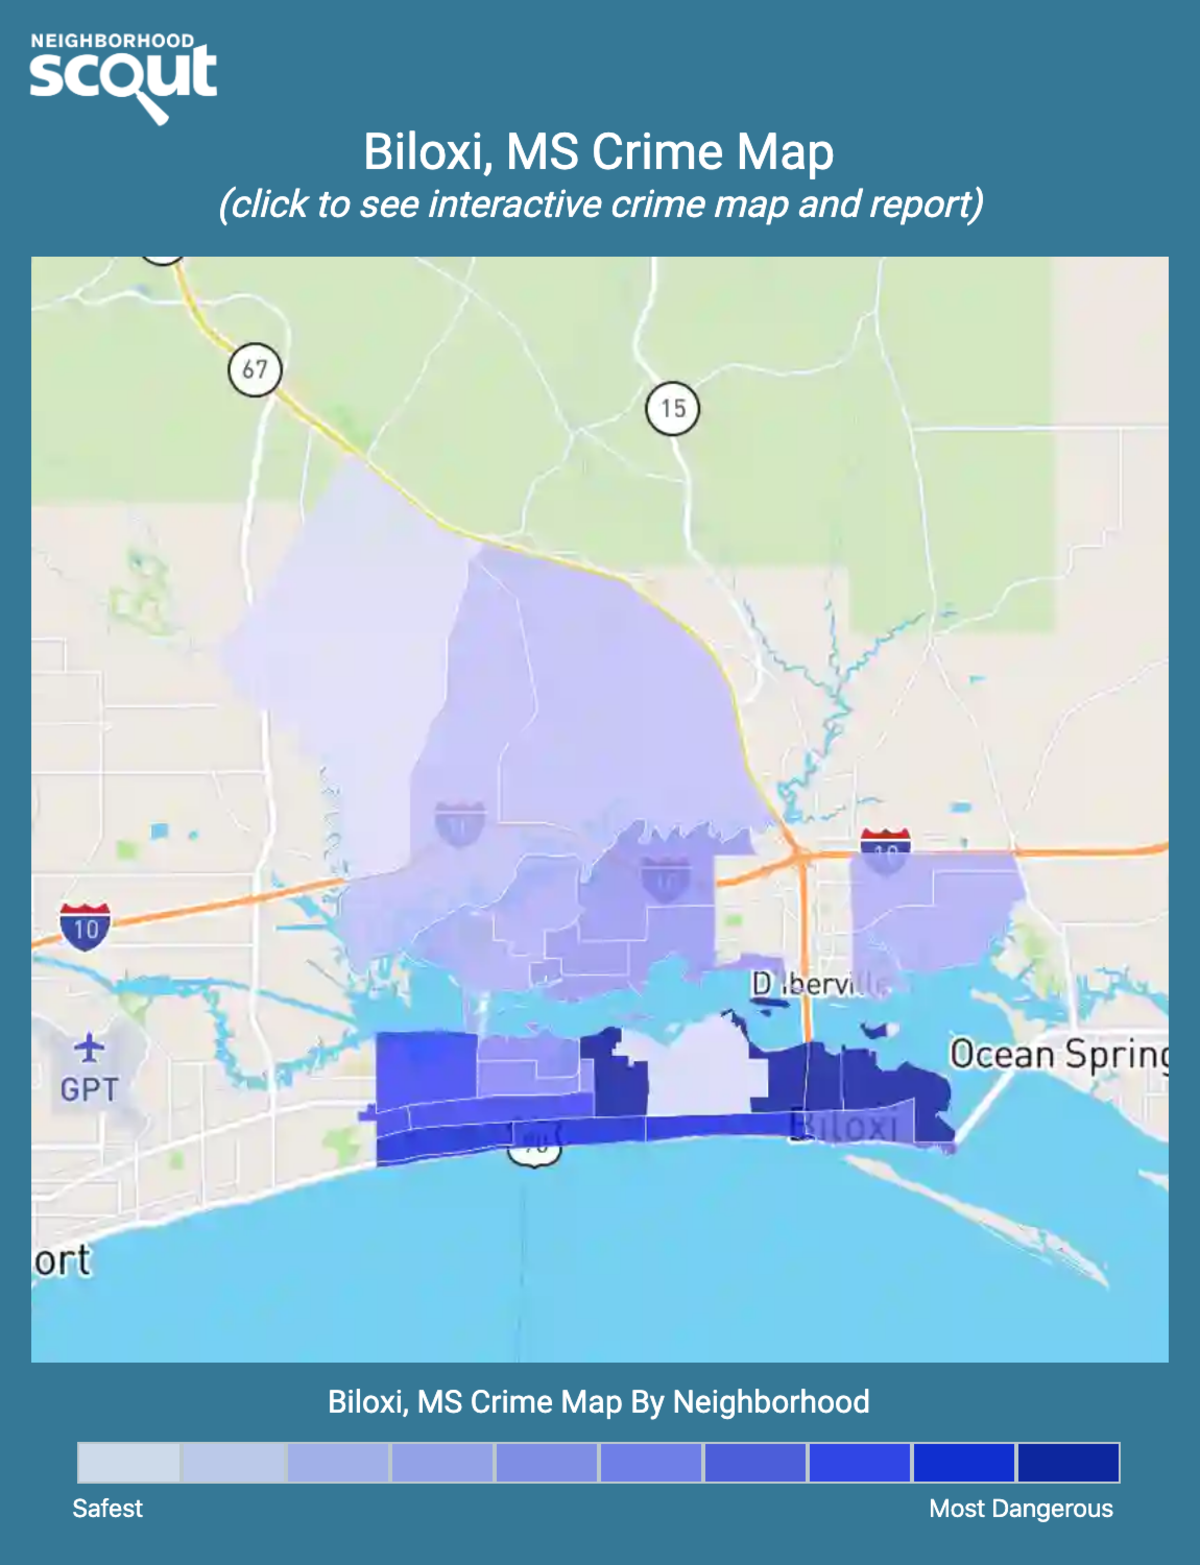 Biloxi Crime Rates And Statistics Neighborhoodscout